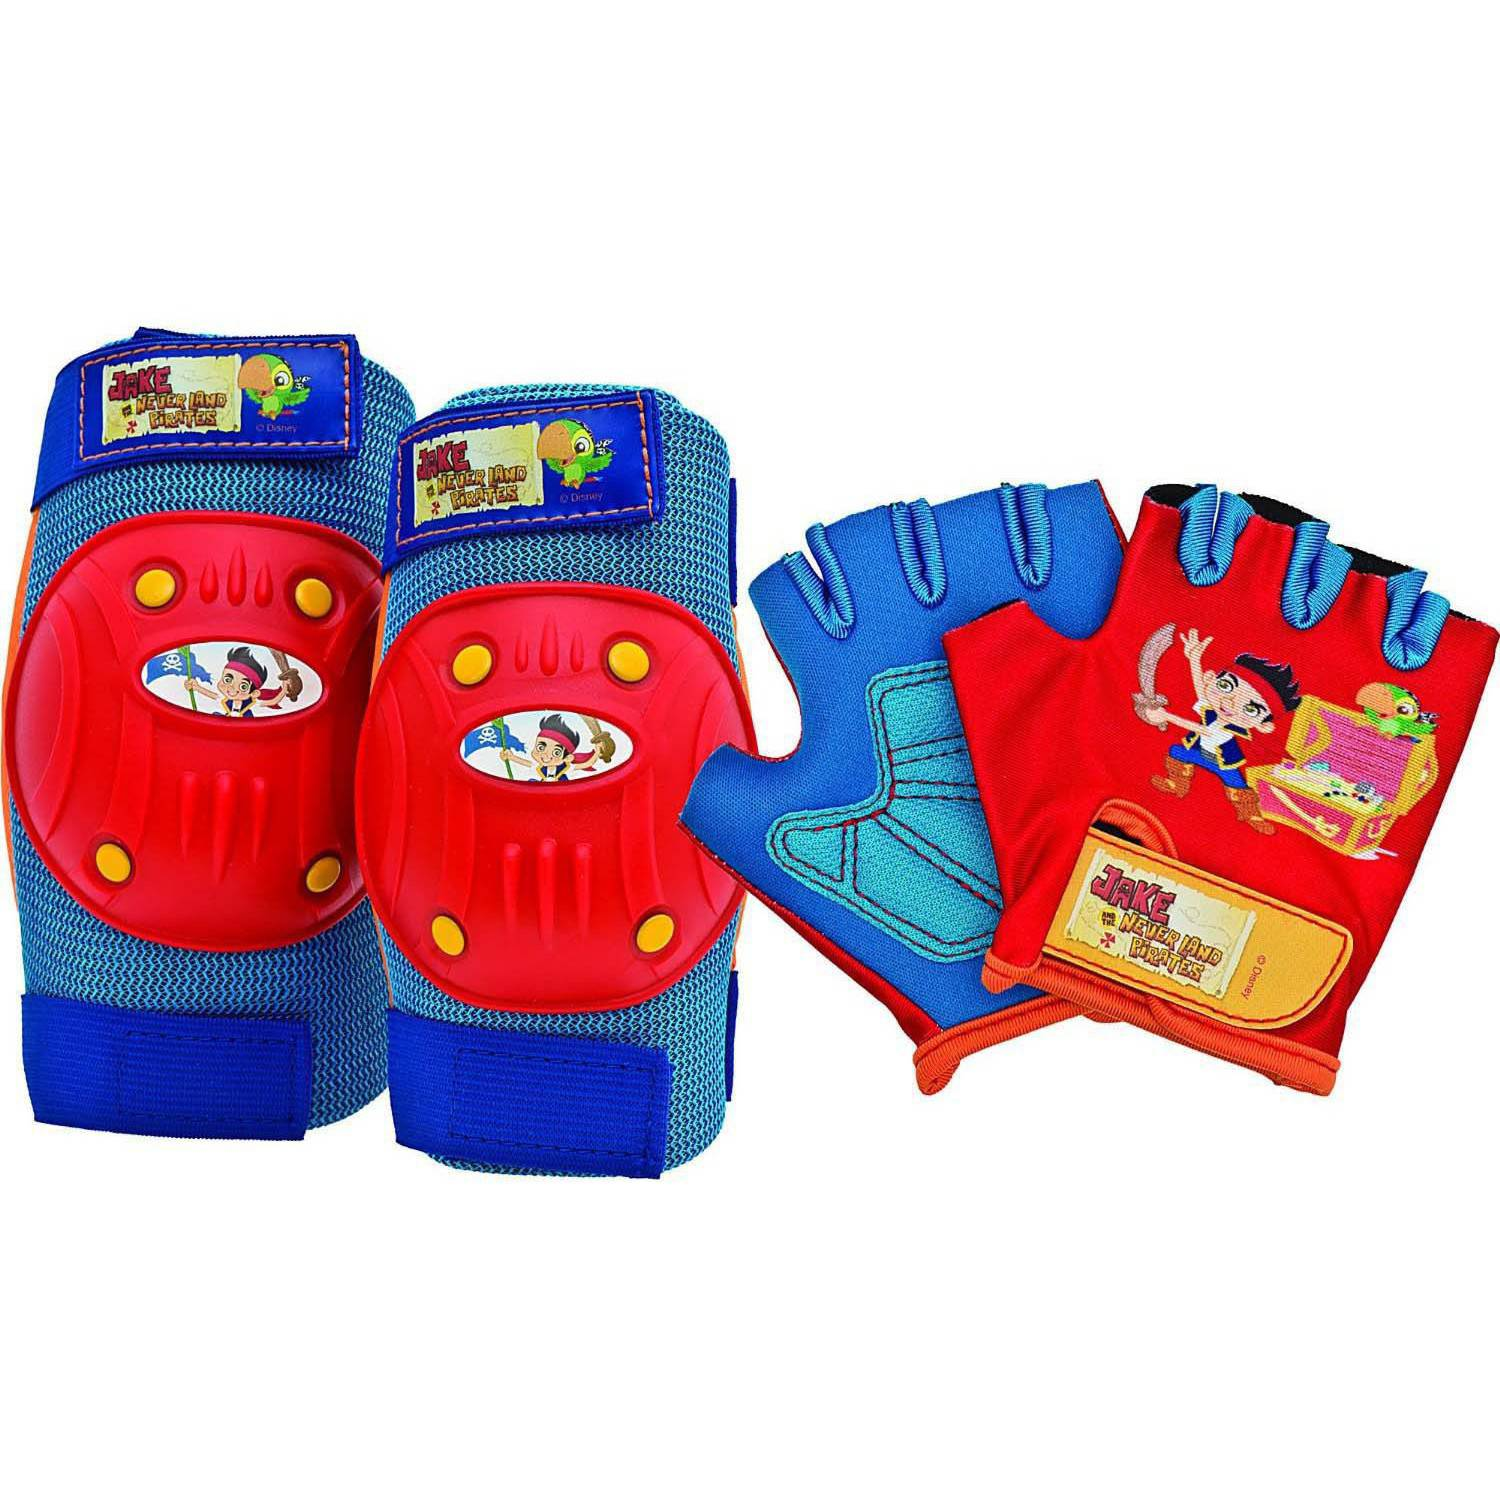 Bell Sports Disney Jake and the Neverland Pirates Protective Pad and Glove Set, Blue/Red